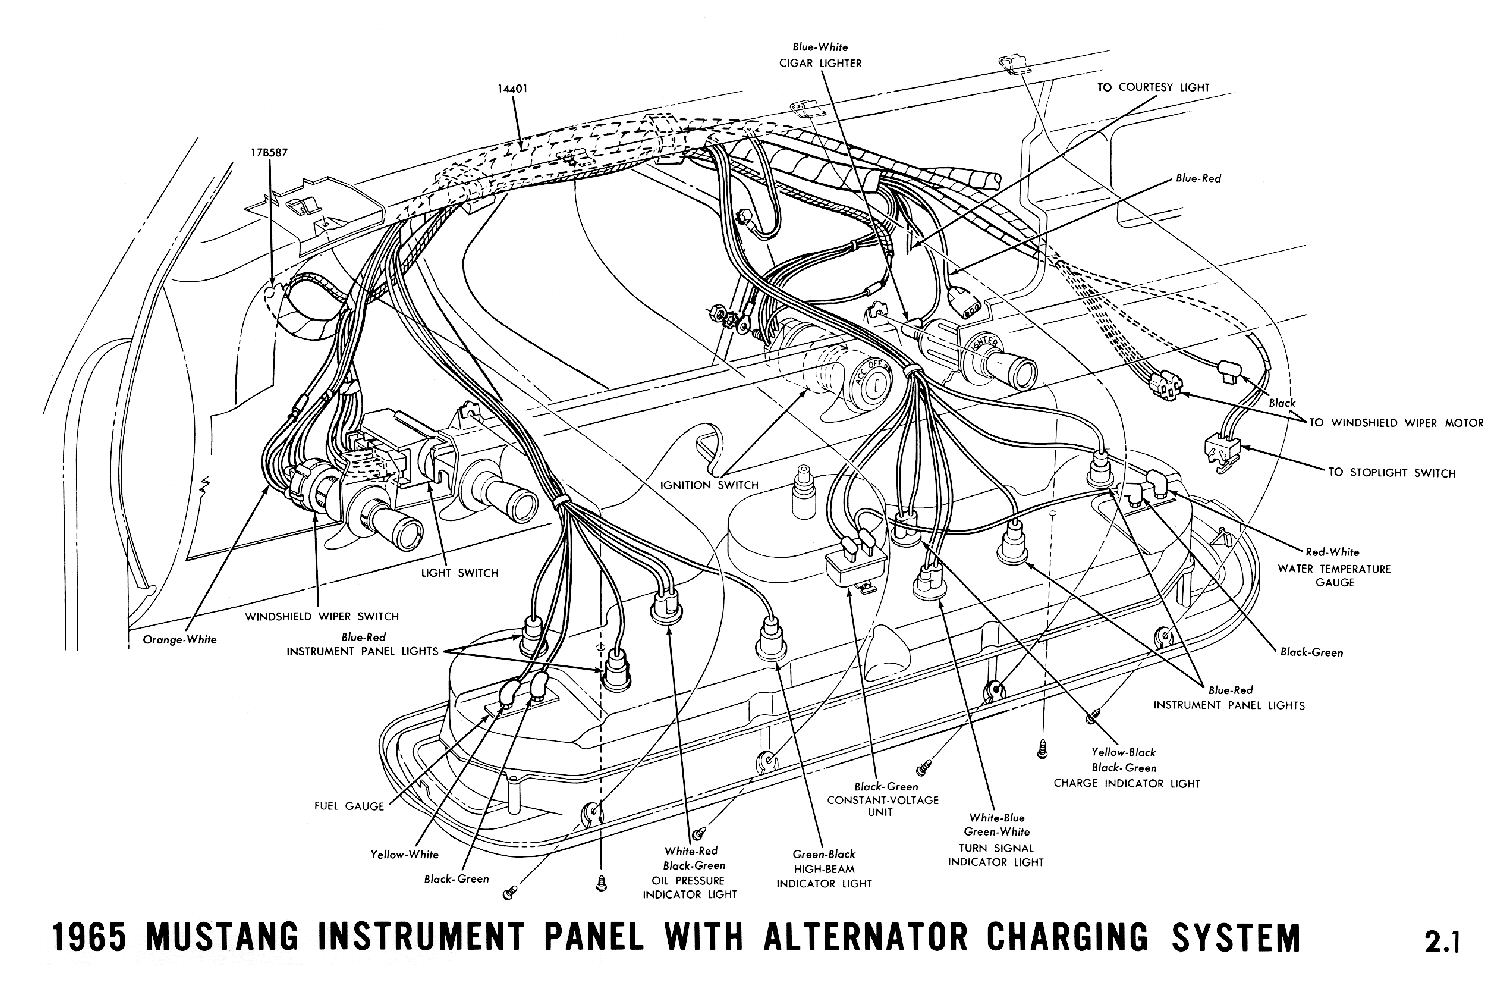 1965 mustang wiring diagrams average joe restoration rh  averagejoerestoration com 1965 mustang under dash wiring diagram 65 Mustang  Wiring Harness